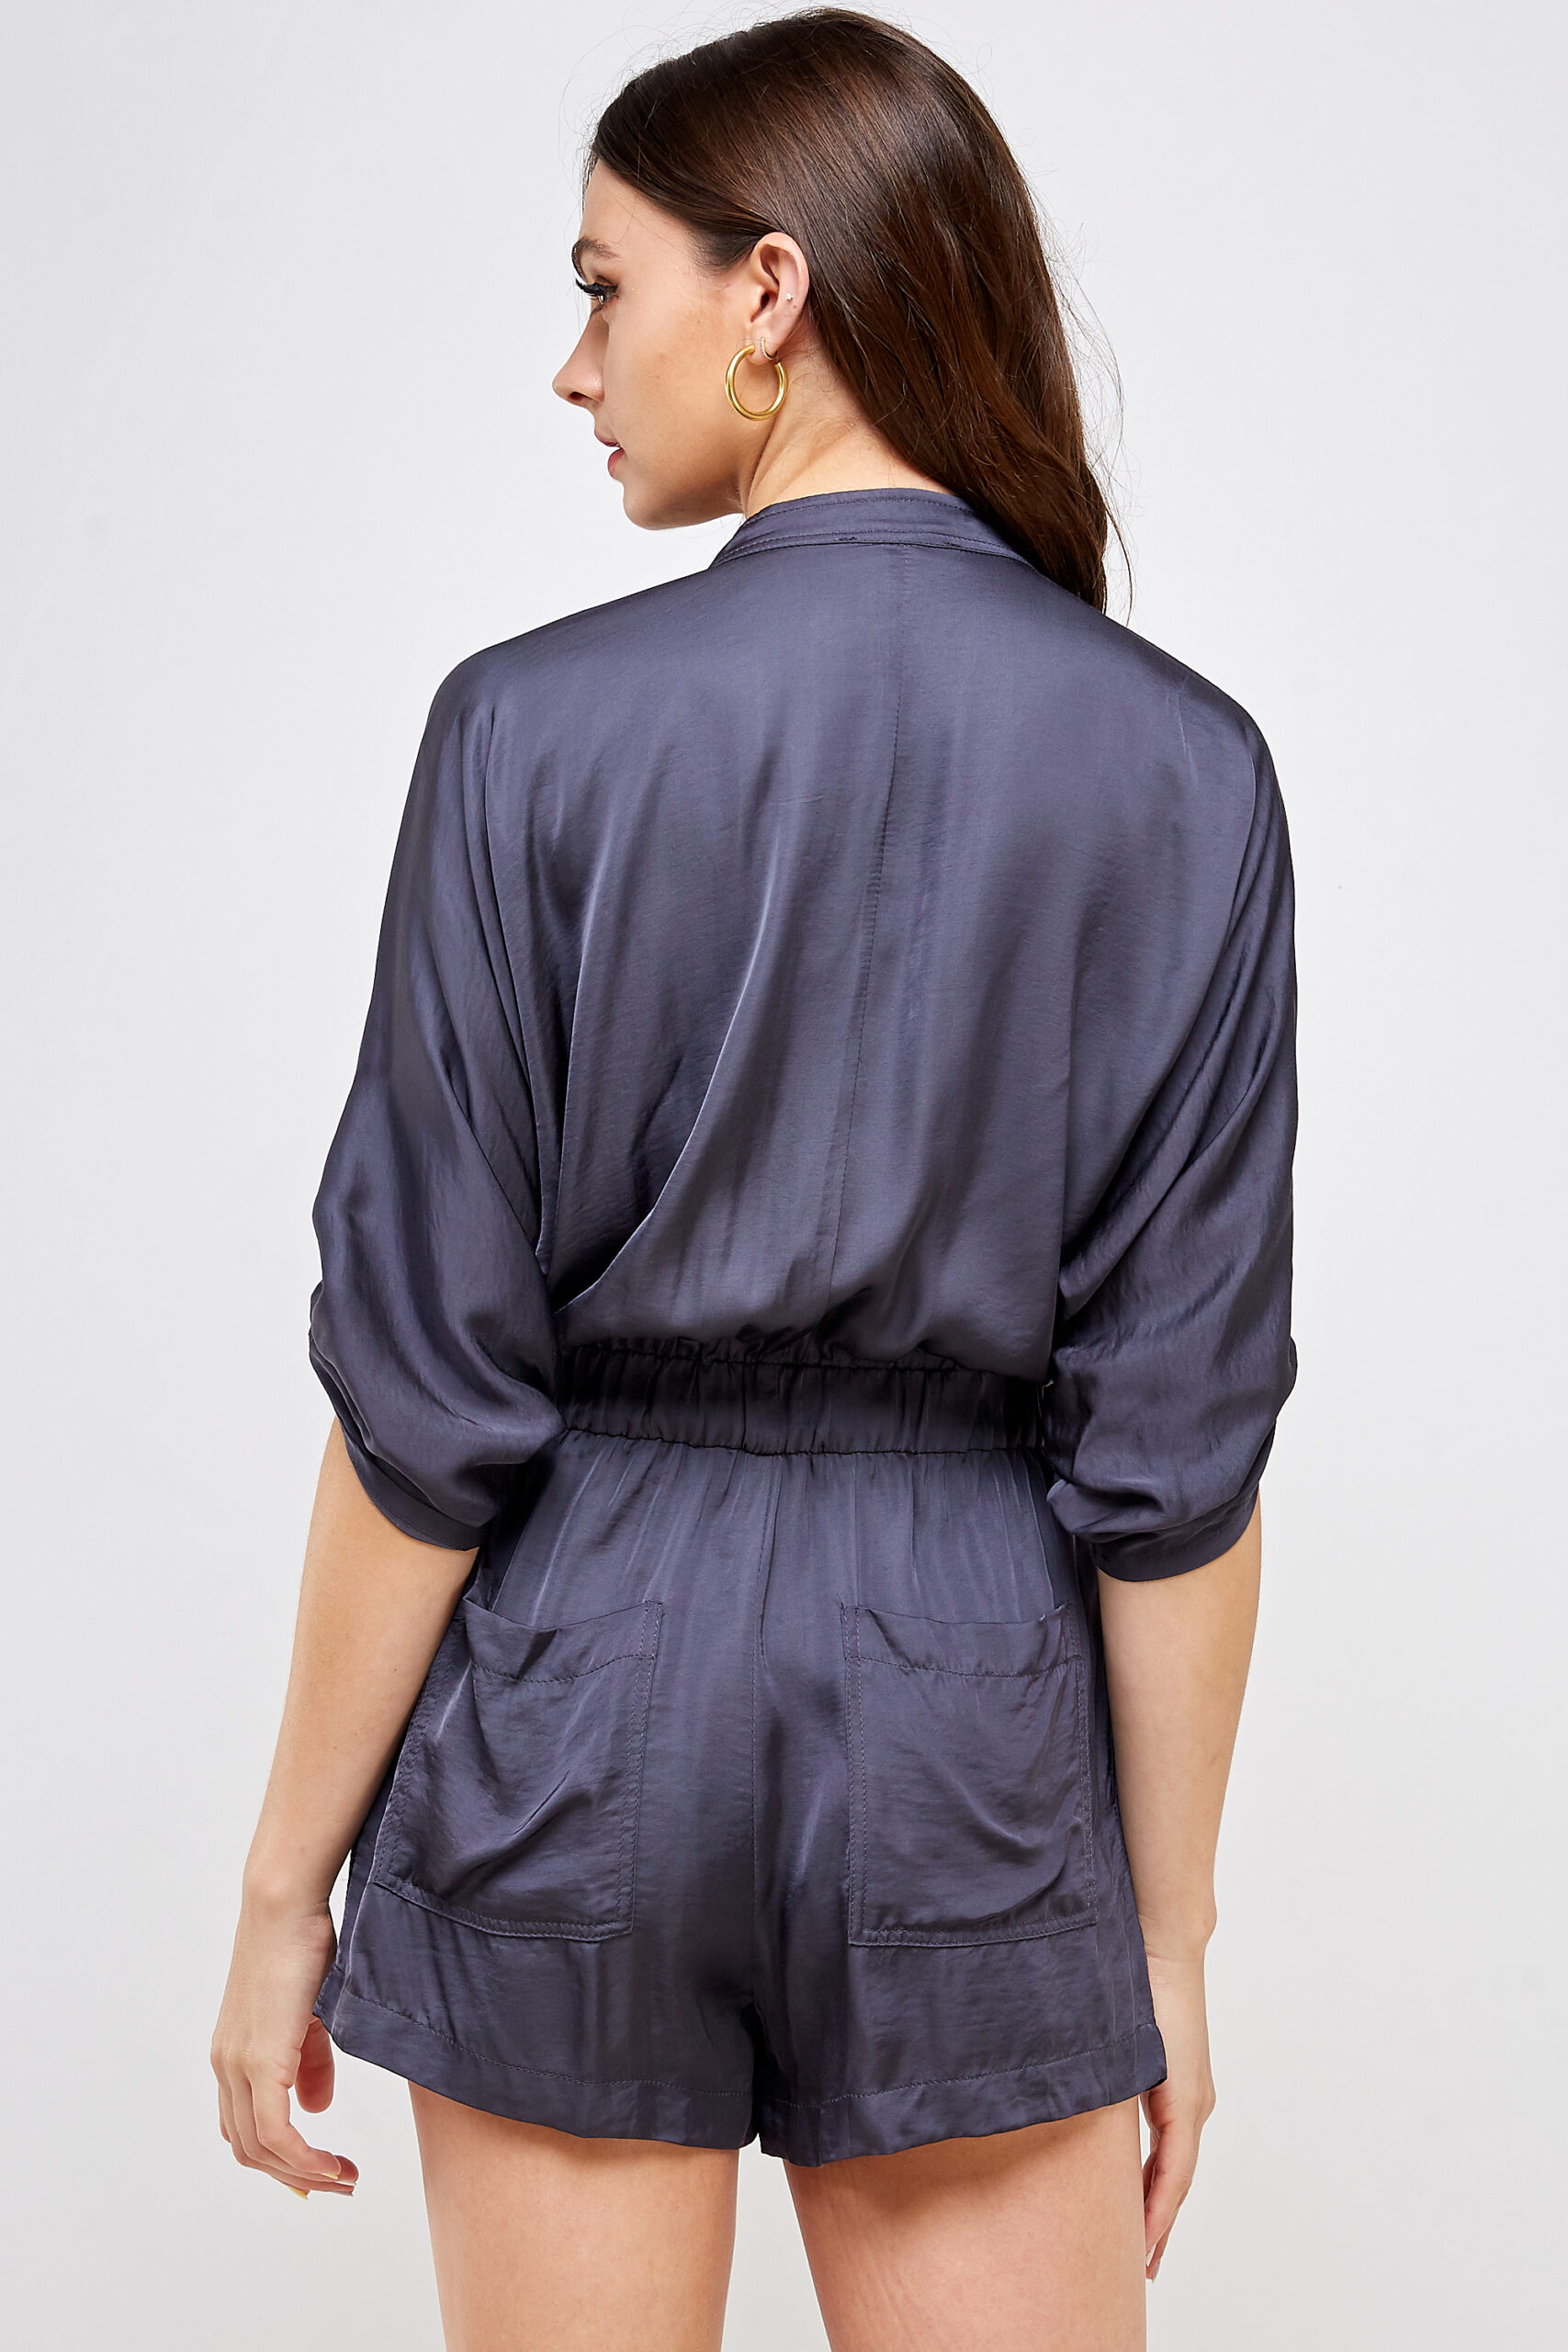 100% Polyester Belted Romper Roll Up Sleeves Button Up Front Back View